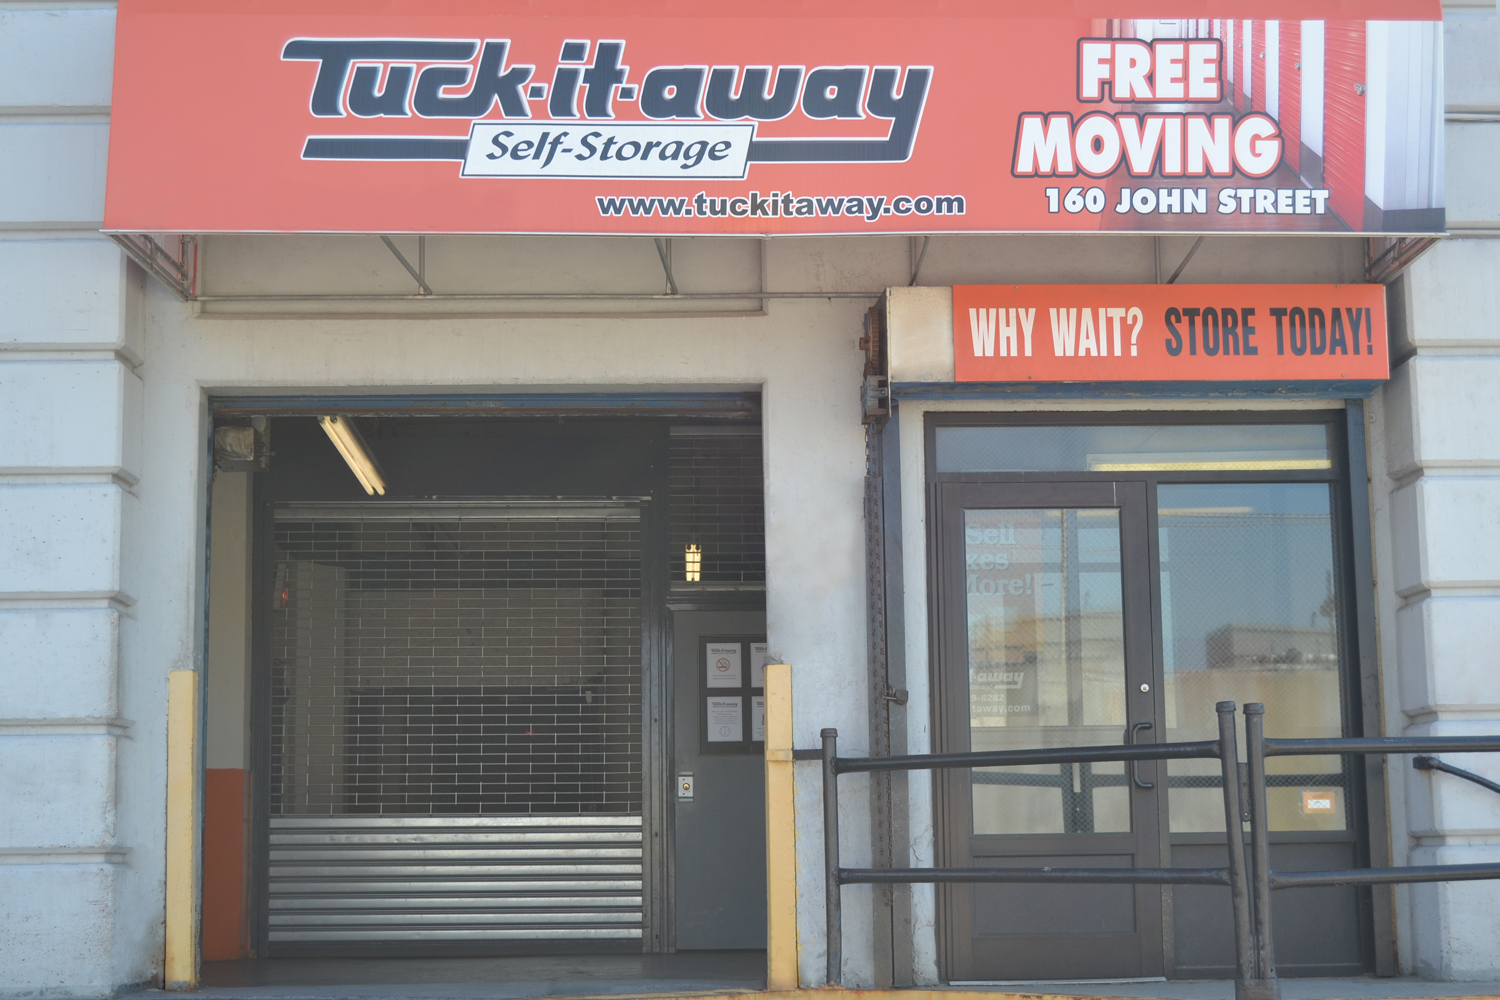 Storage units sizes and pricing at Tuck-It-Away Self-Storage in Brooklyn